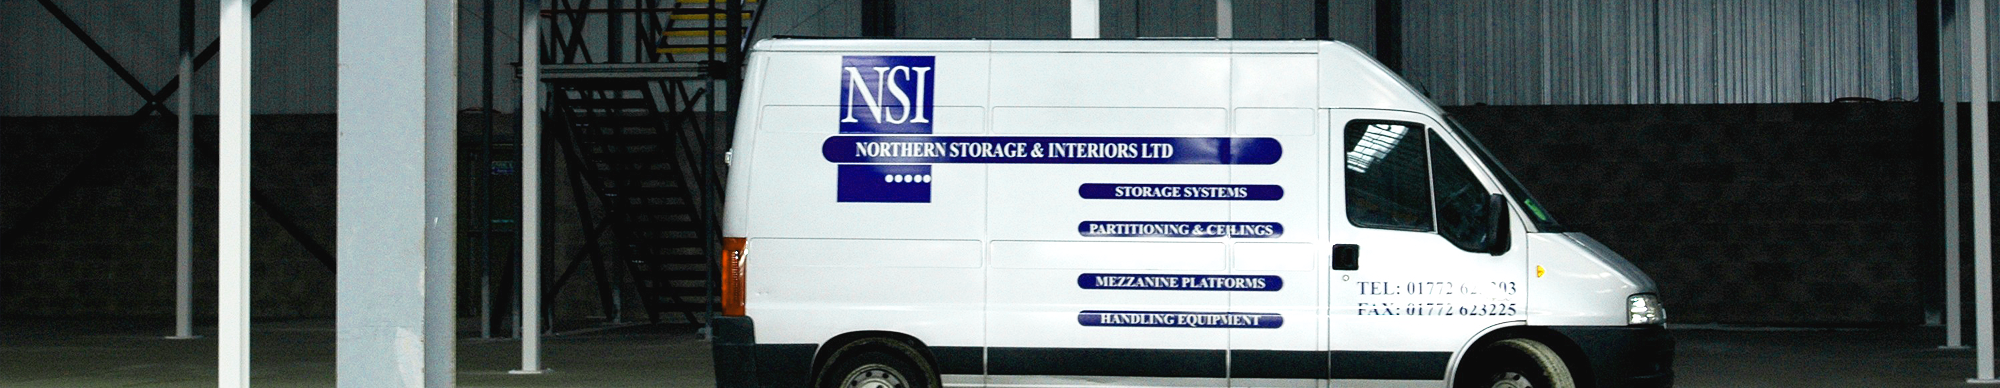 NSI Projects branded van